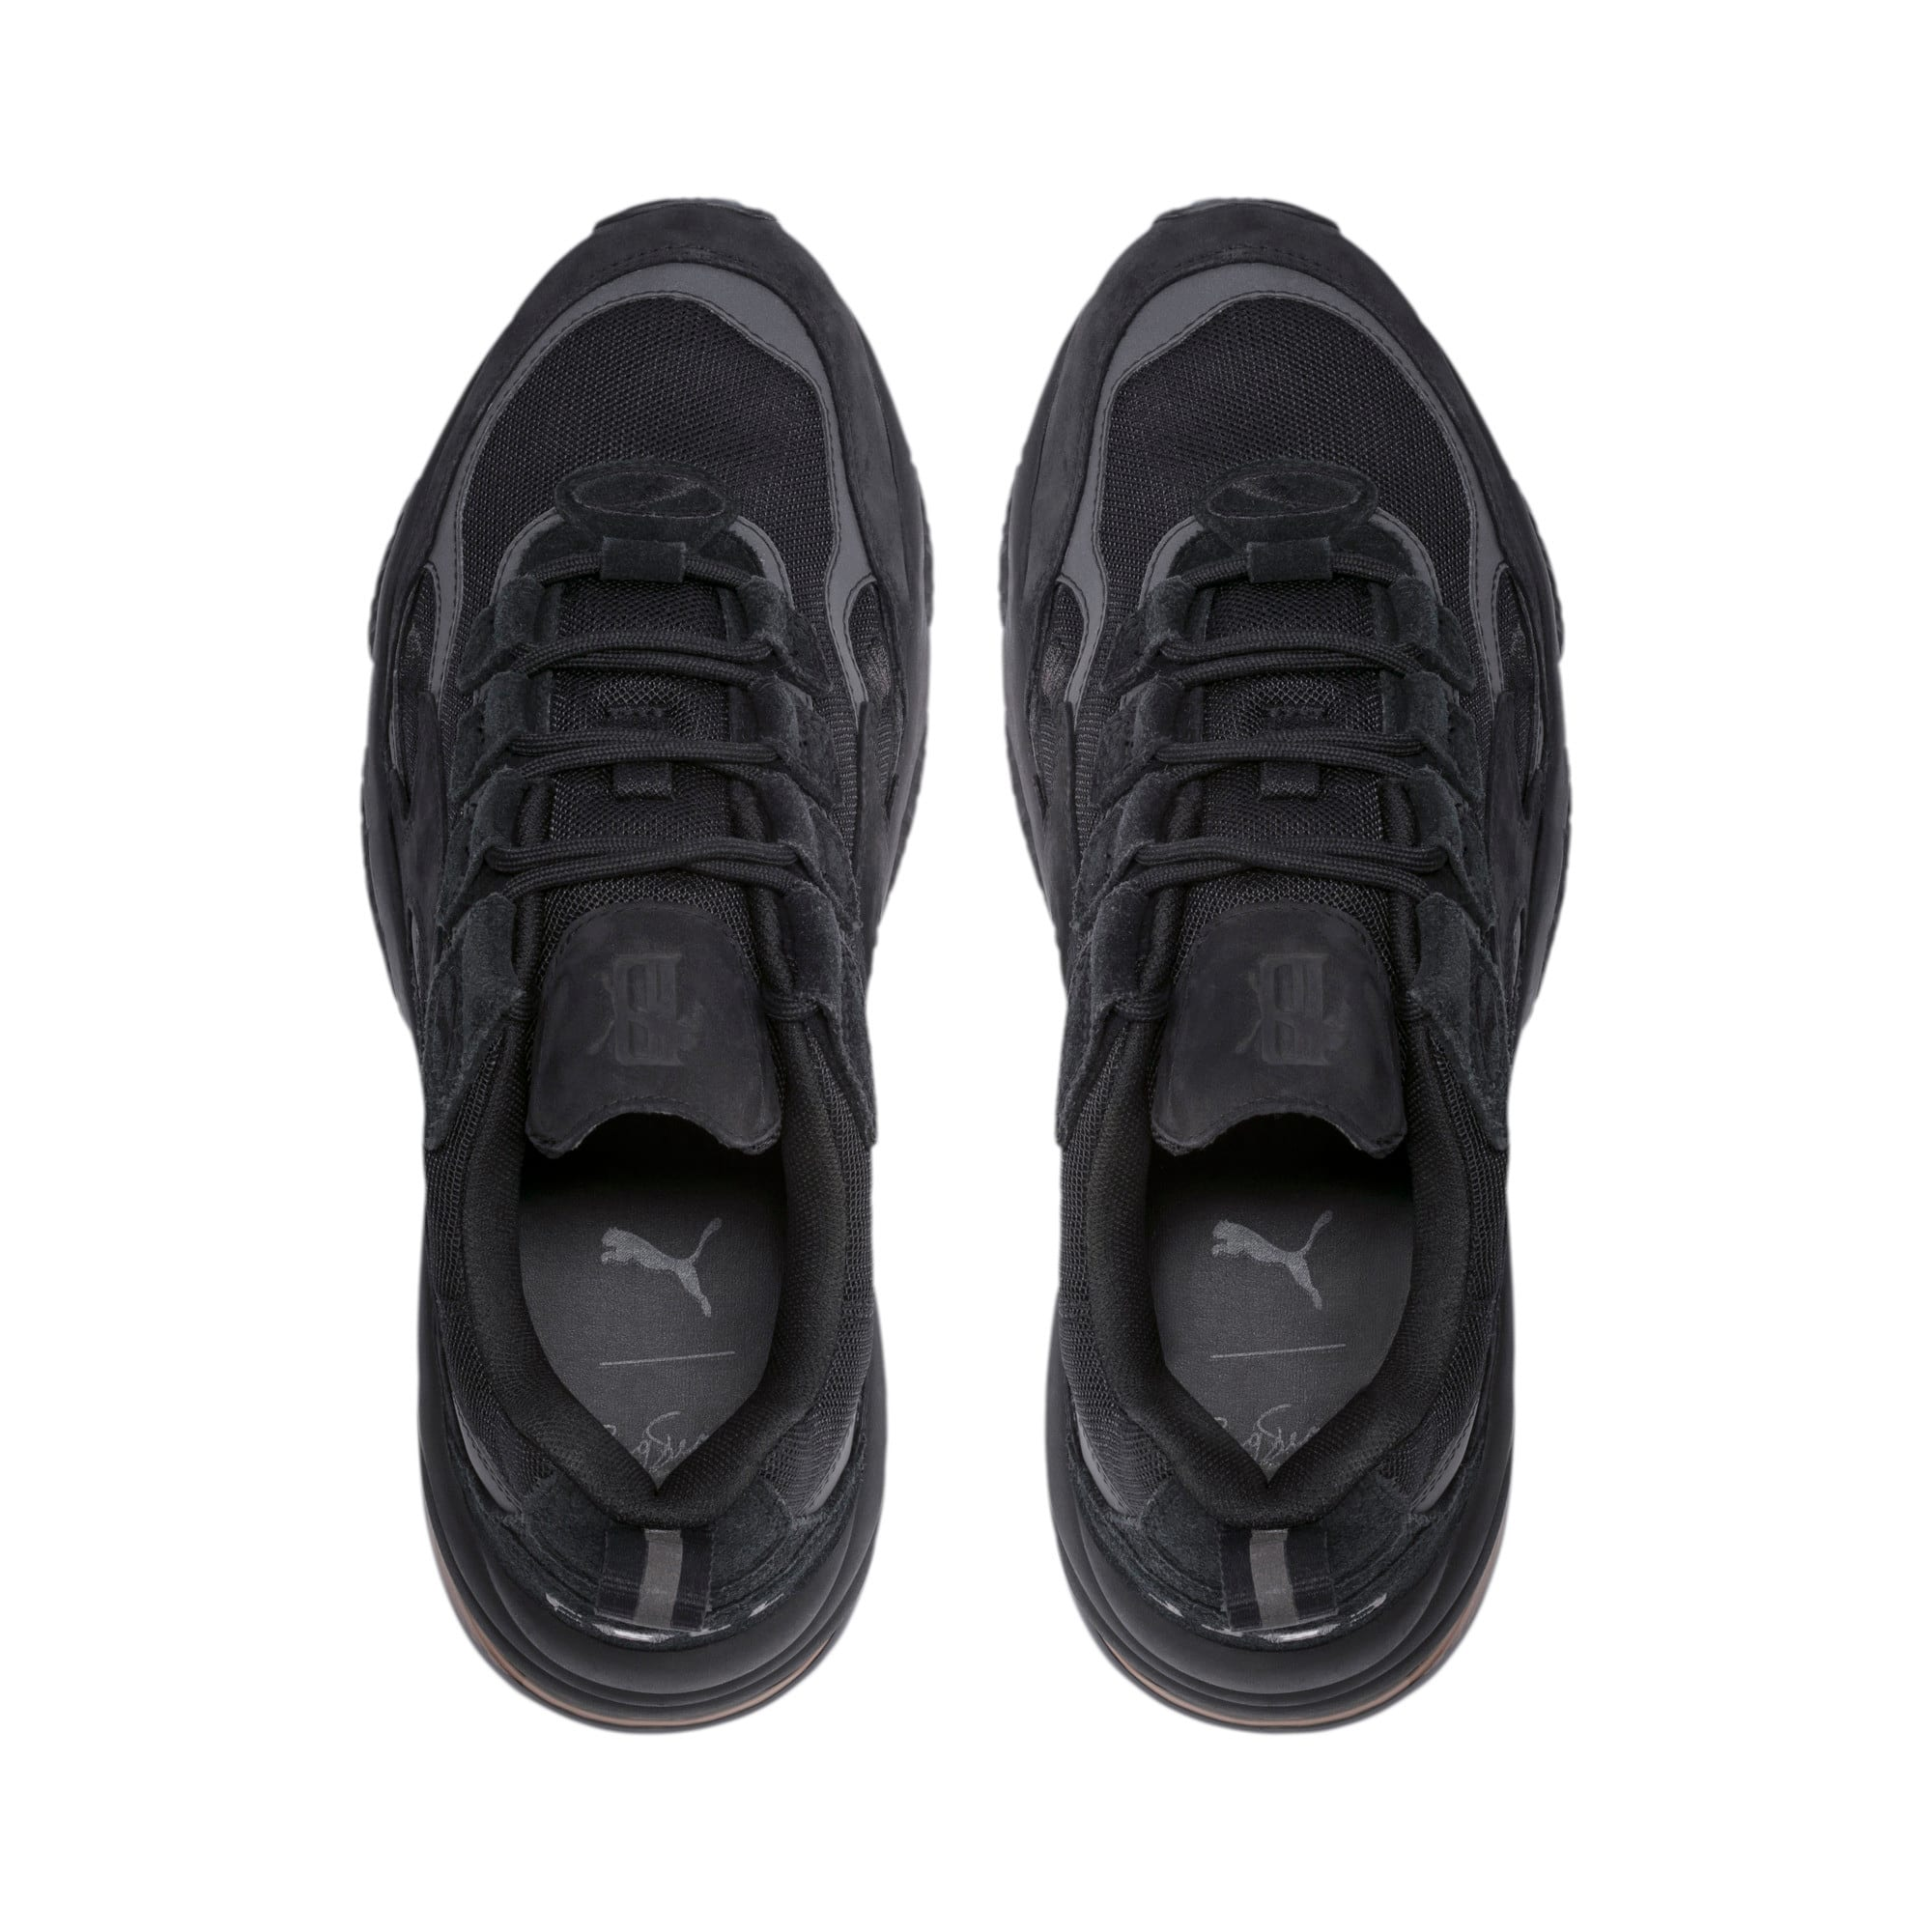 Thumbnail 6 of Scarpe da ginnastica CELL Venom Blackout, Puma Black-Puma Black, medium